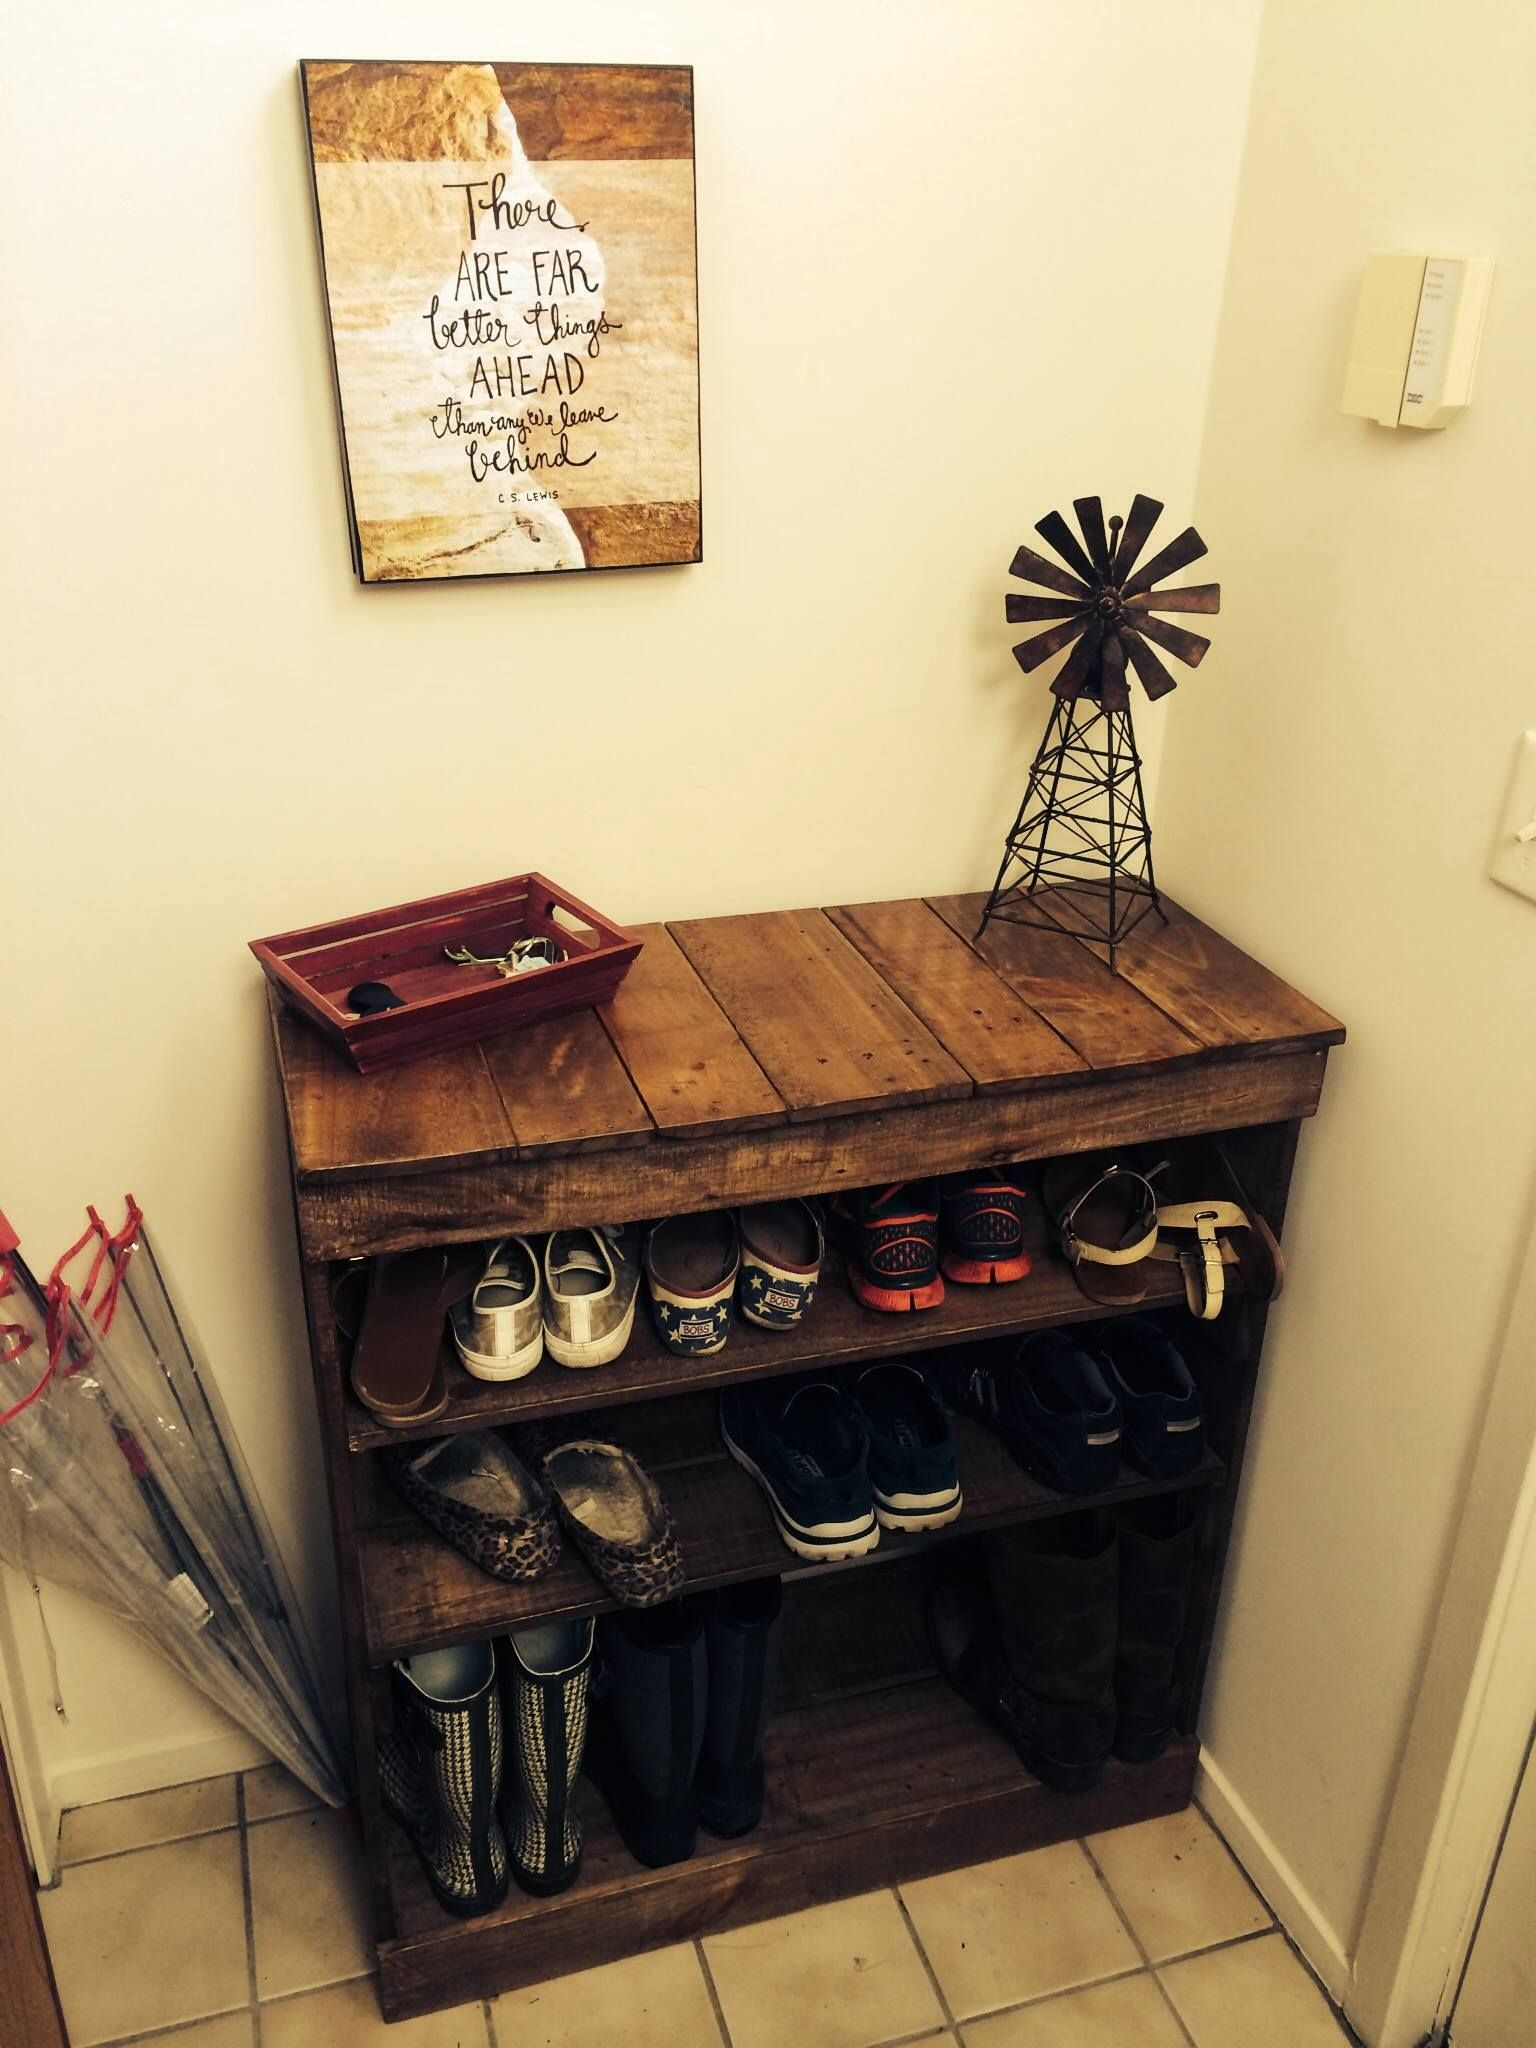 50 Creative and Unique Shoe Rack Ideas For Small Spaces | Shoe rack ...